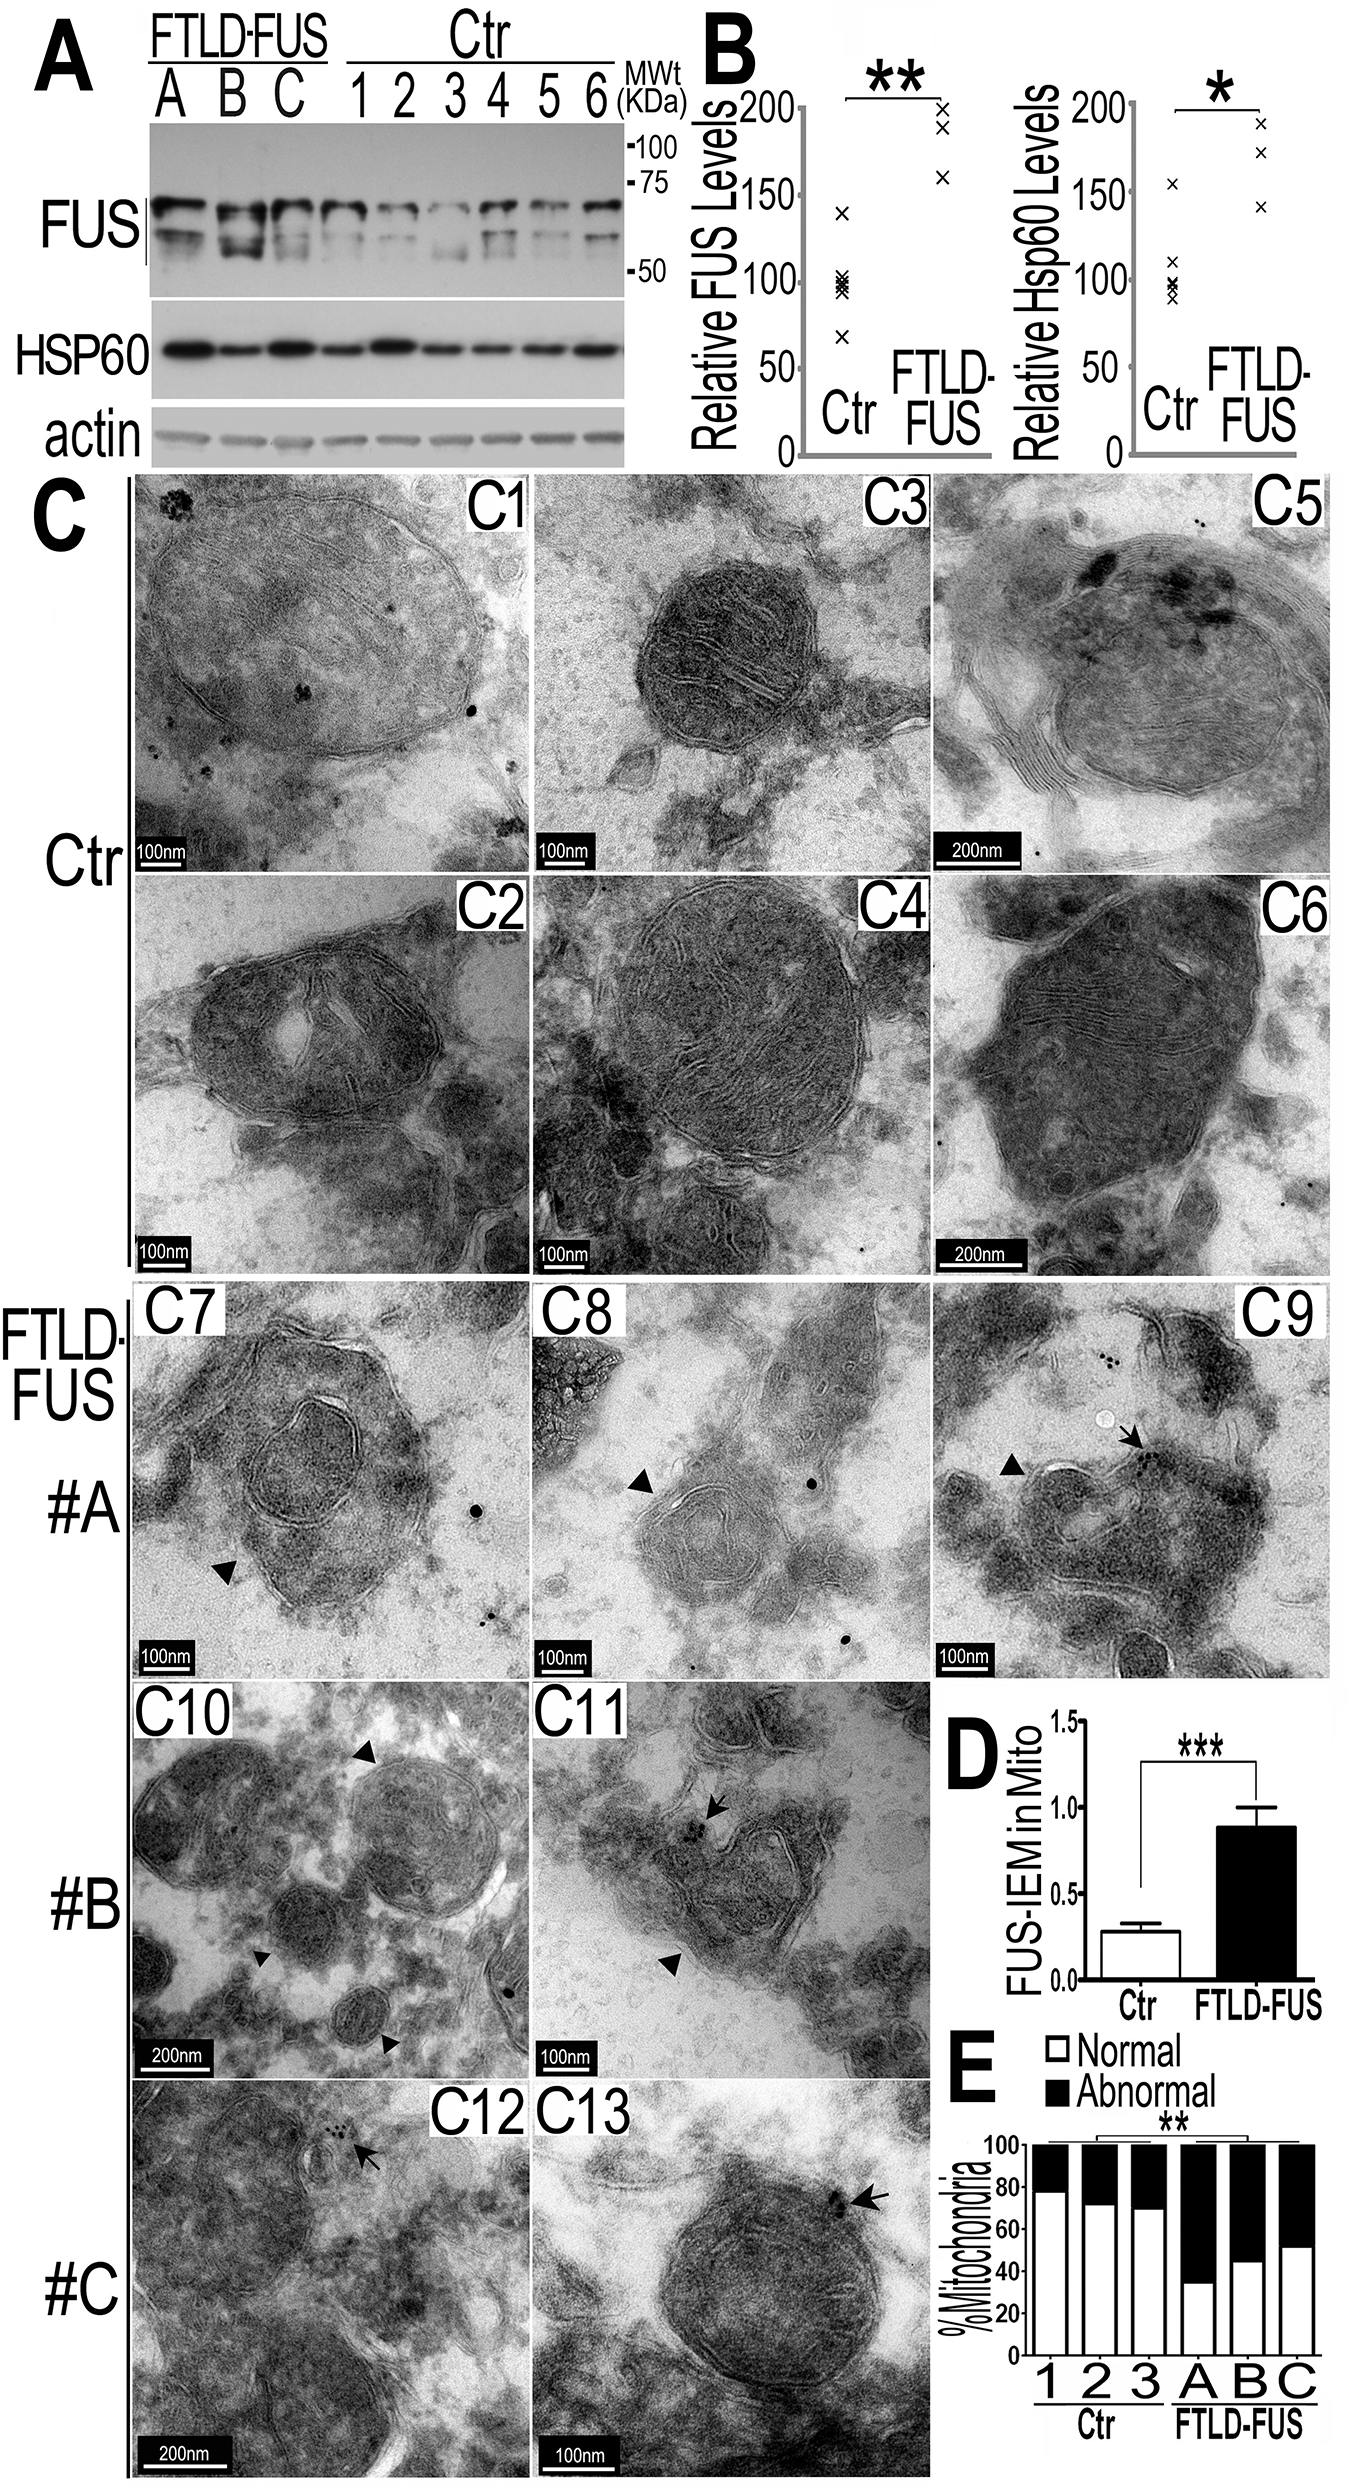 Increased FUS protein levels and mitochondrial damage detected in 3 independent FTLD-FUS brain samples.